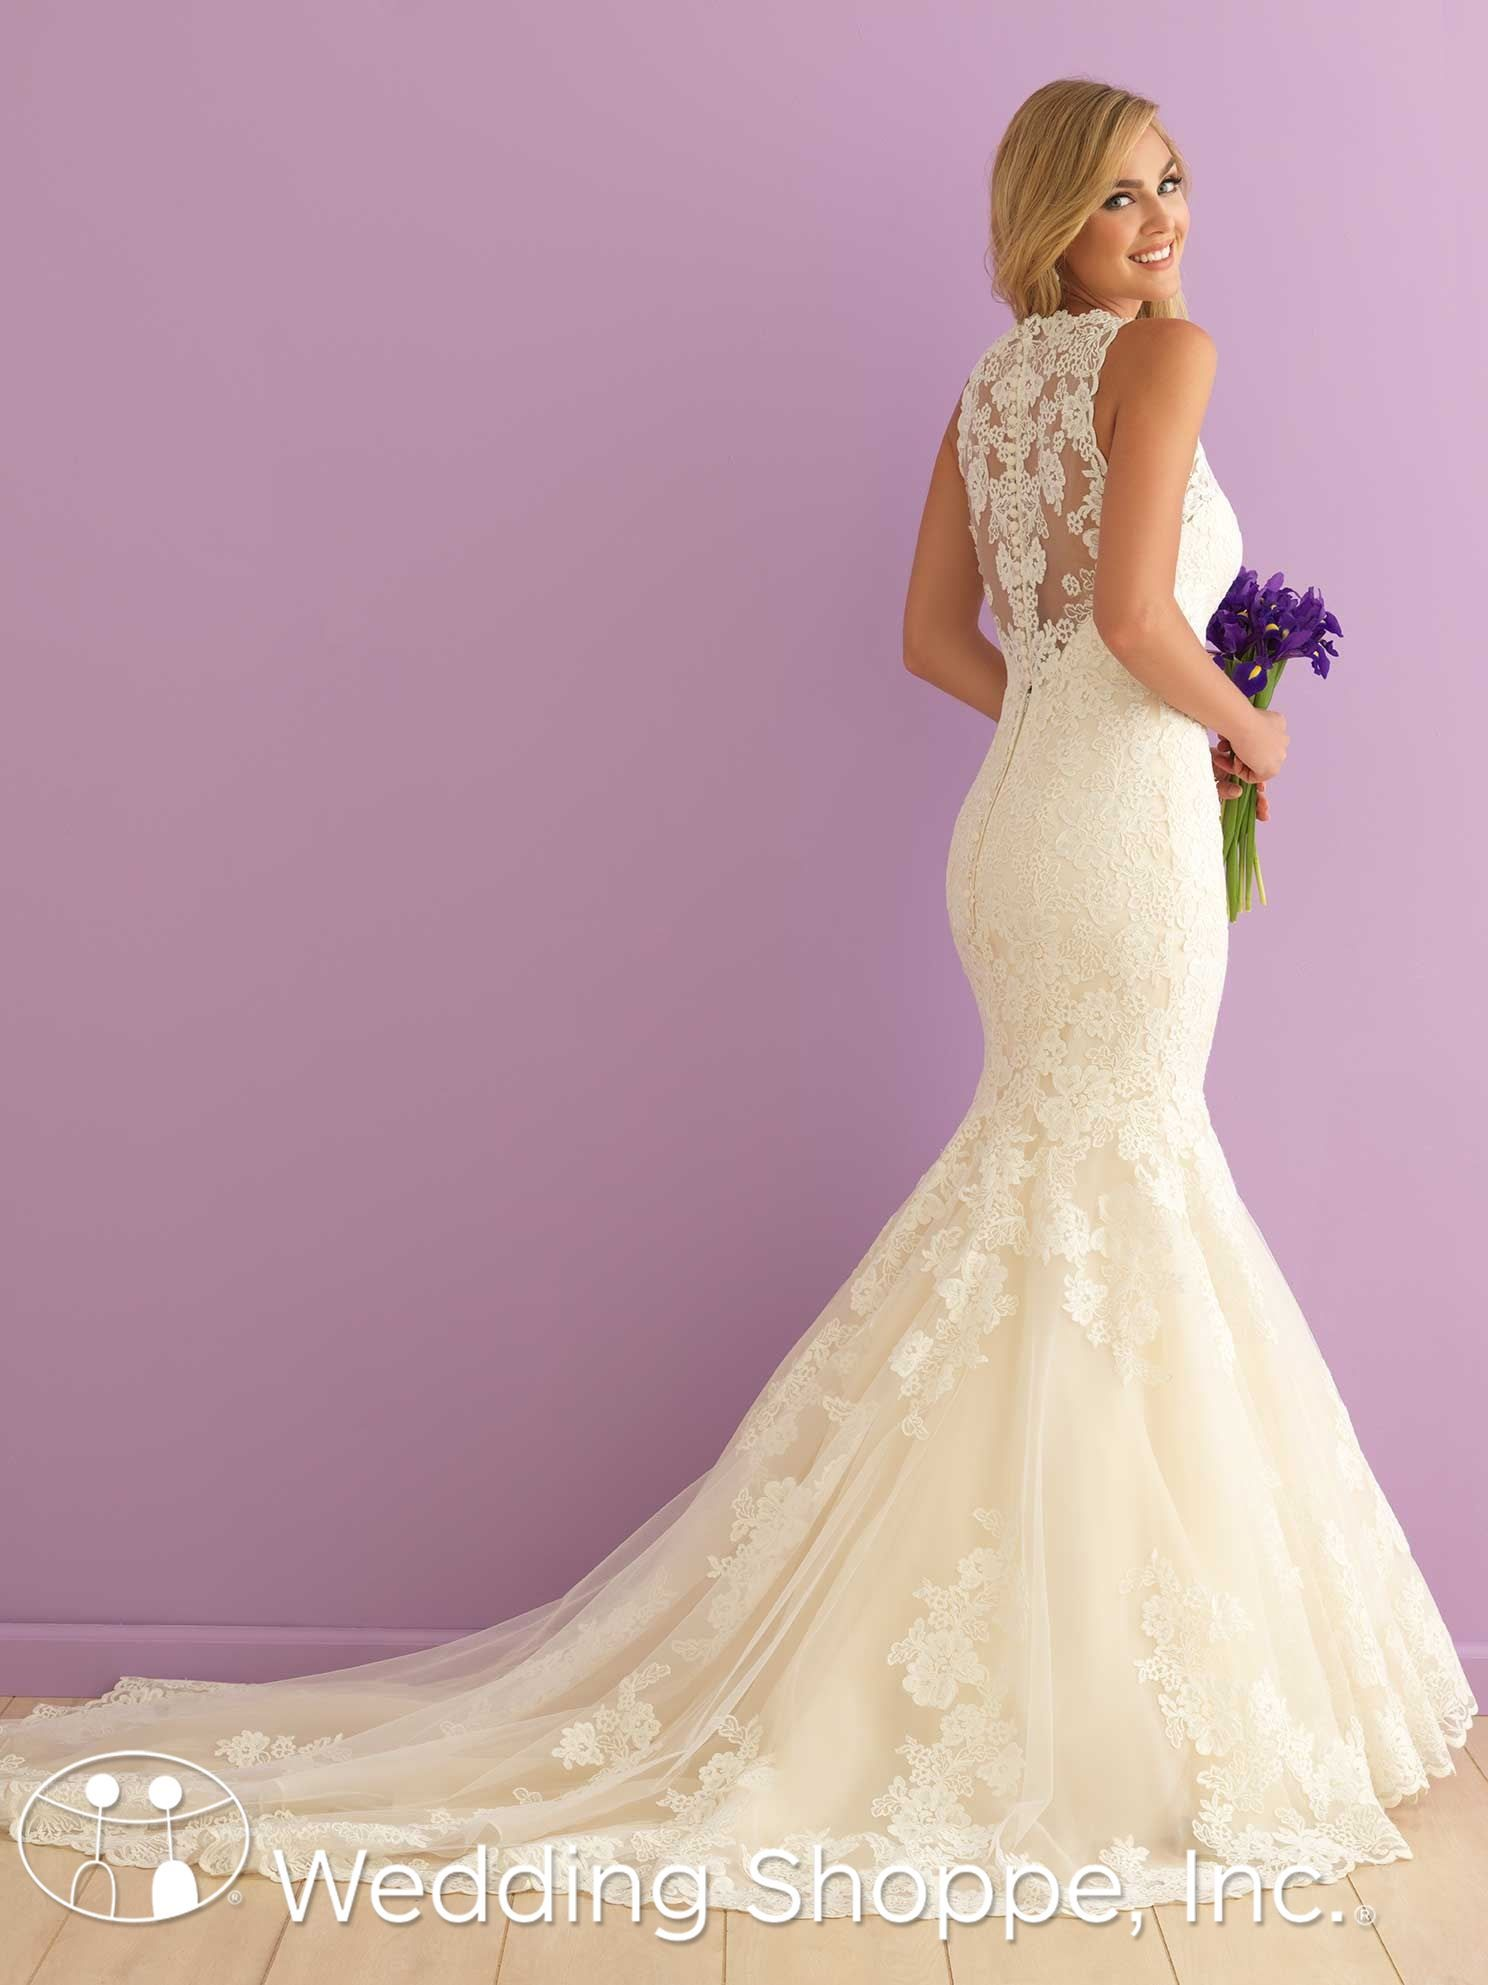 Allure Romance Bridal Gown 2907: A romantic lace fit and flare ...